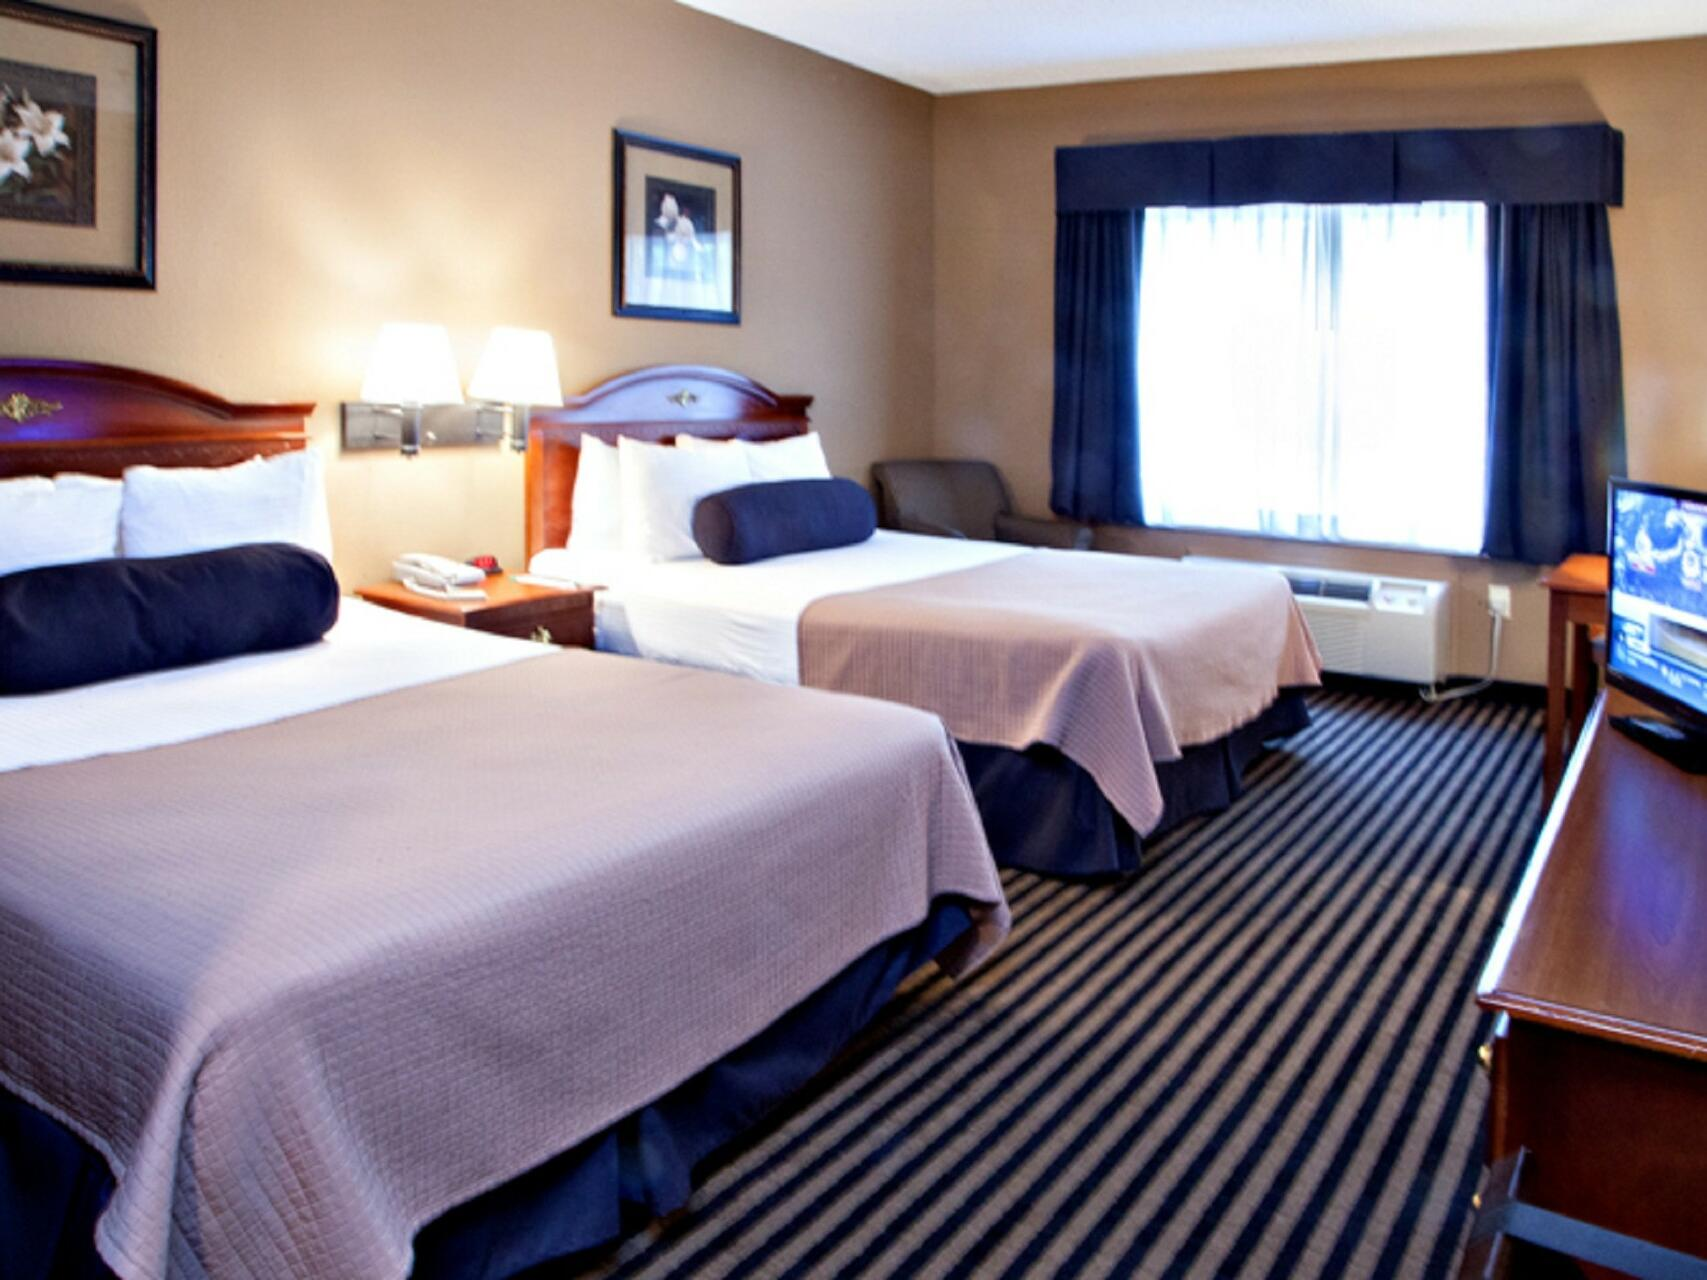 Deluxe Room with two beds at Mountain Inn & Suites